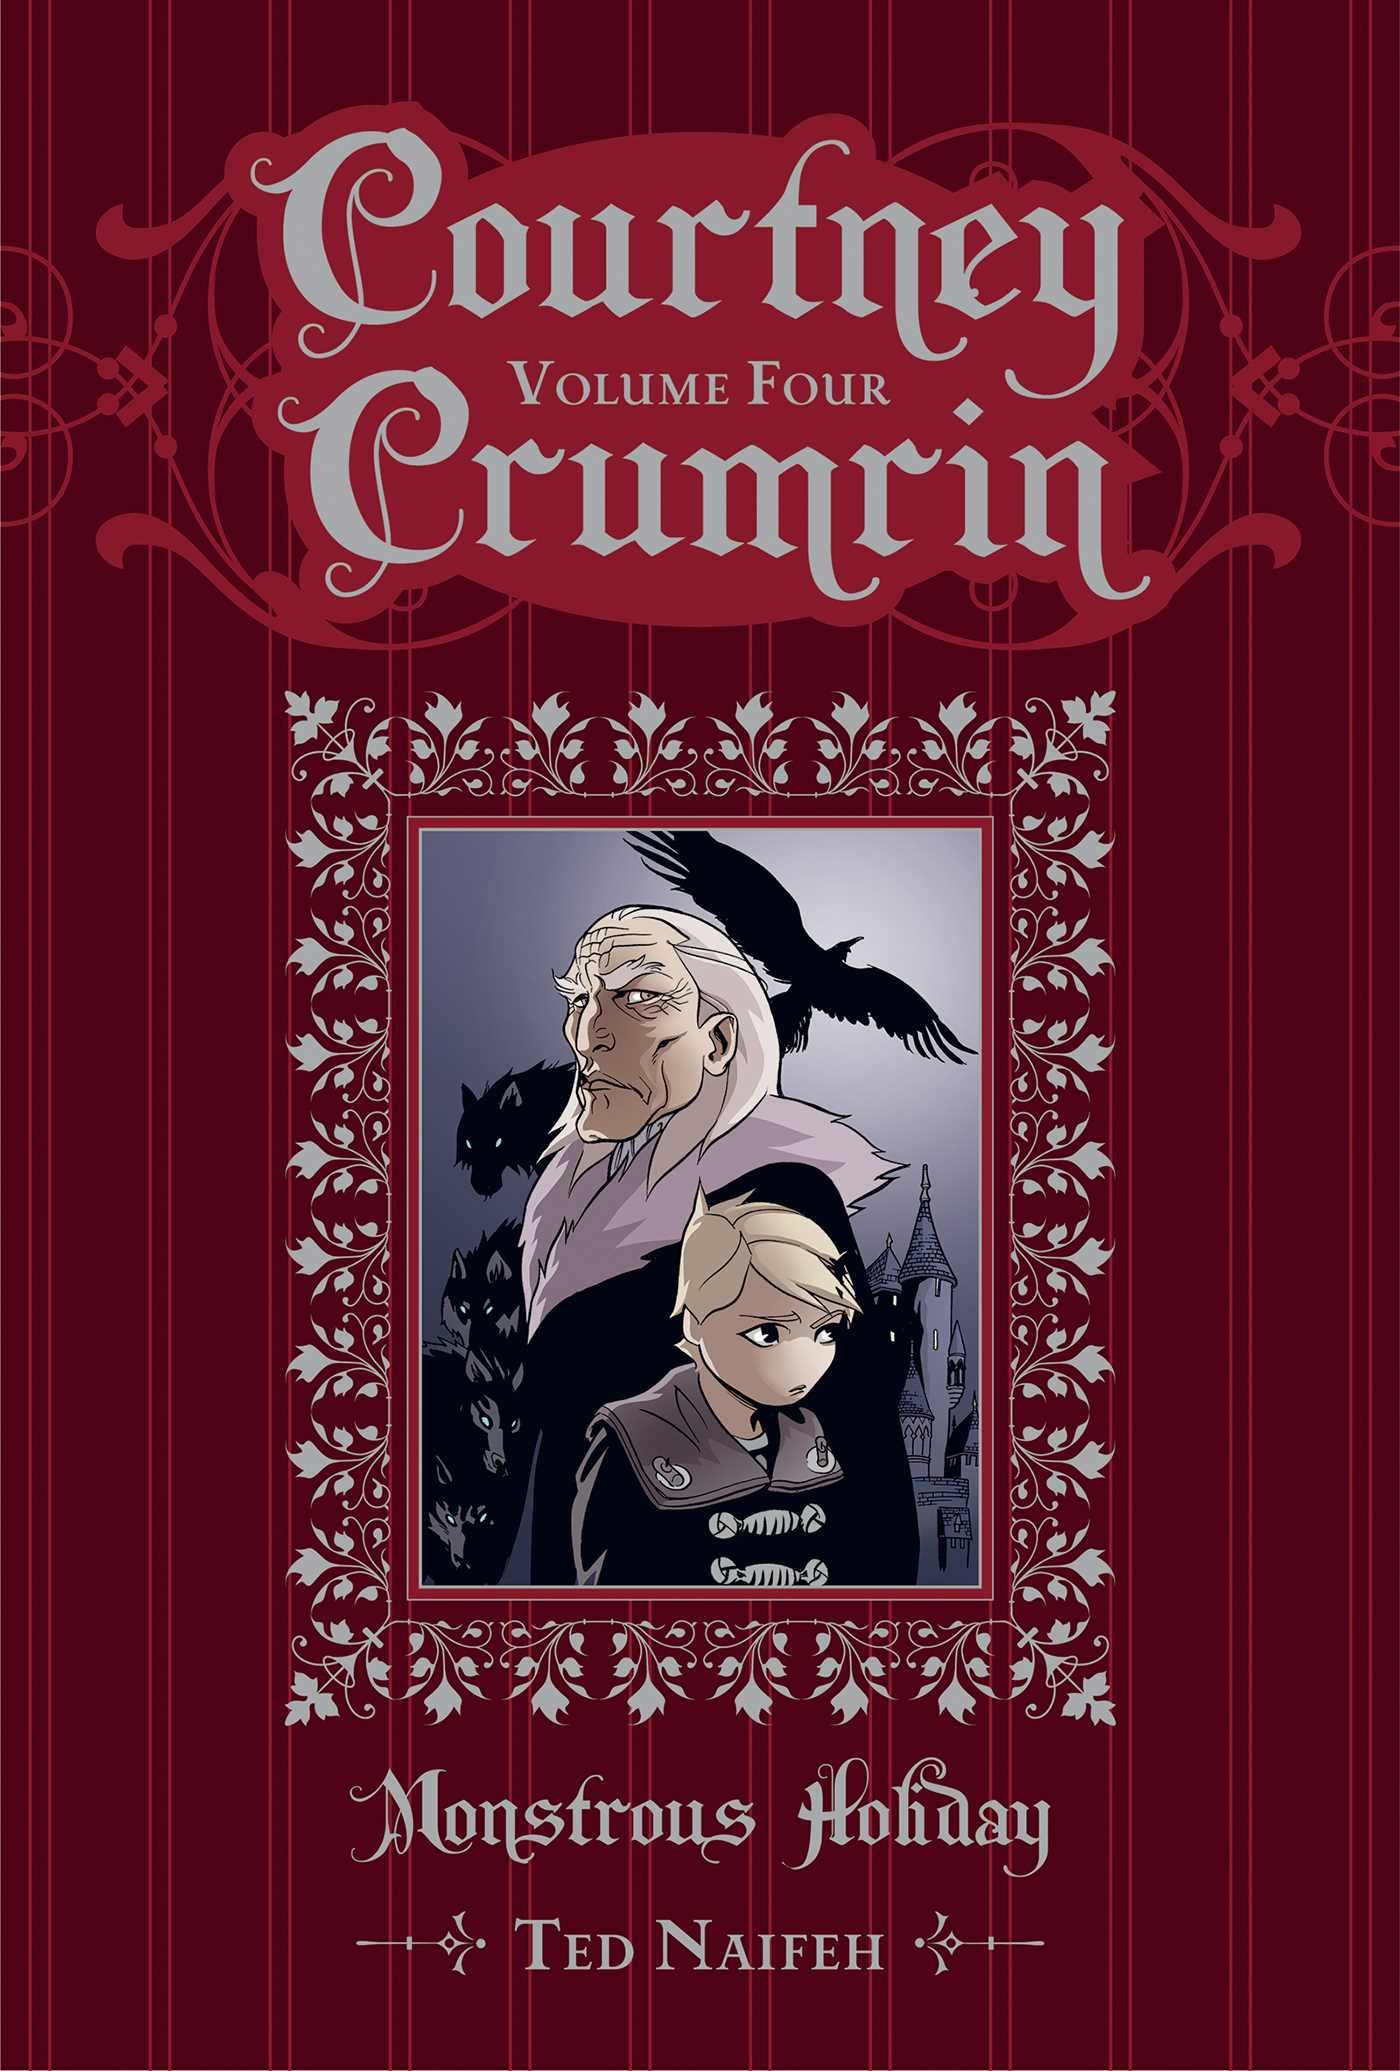 Image result for courtney crumrin monstrous holiday